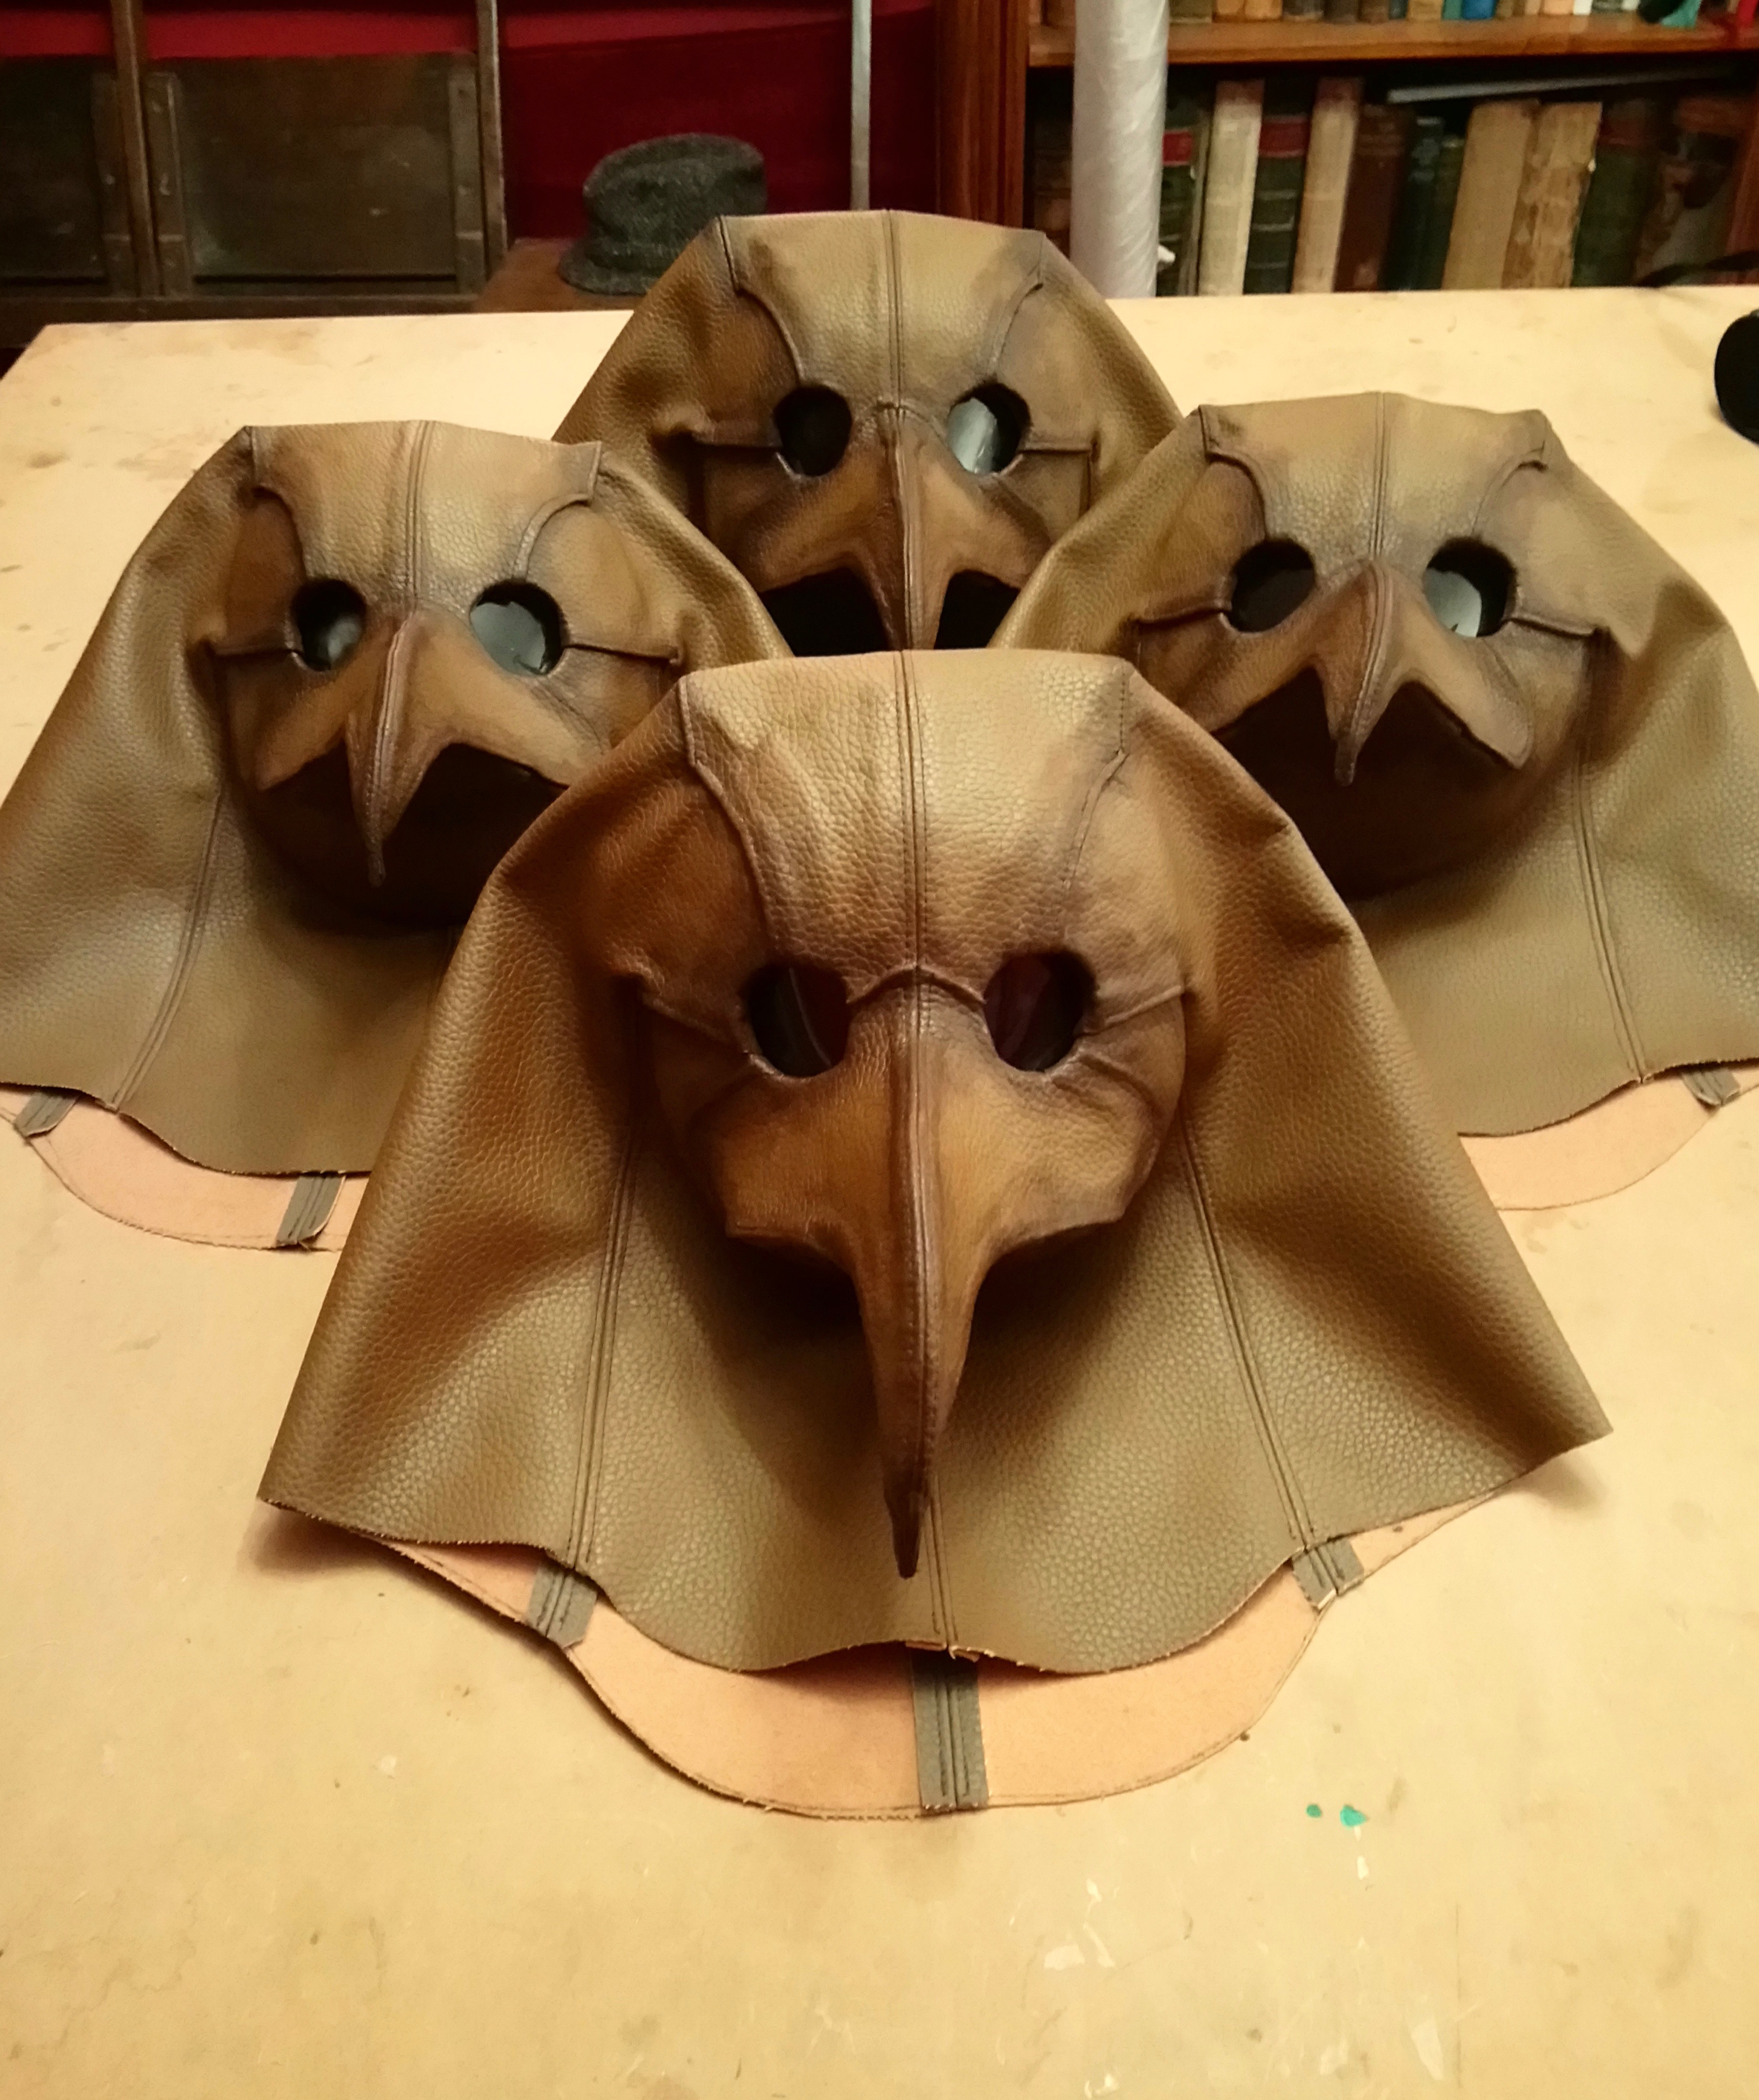 Four finished plague masks